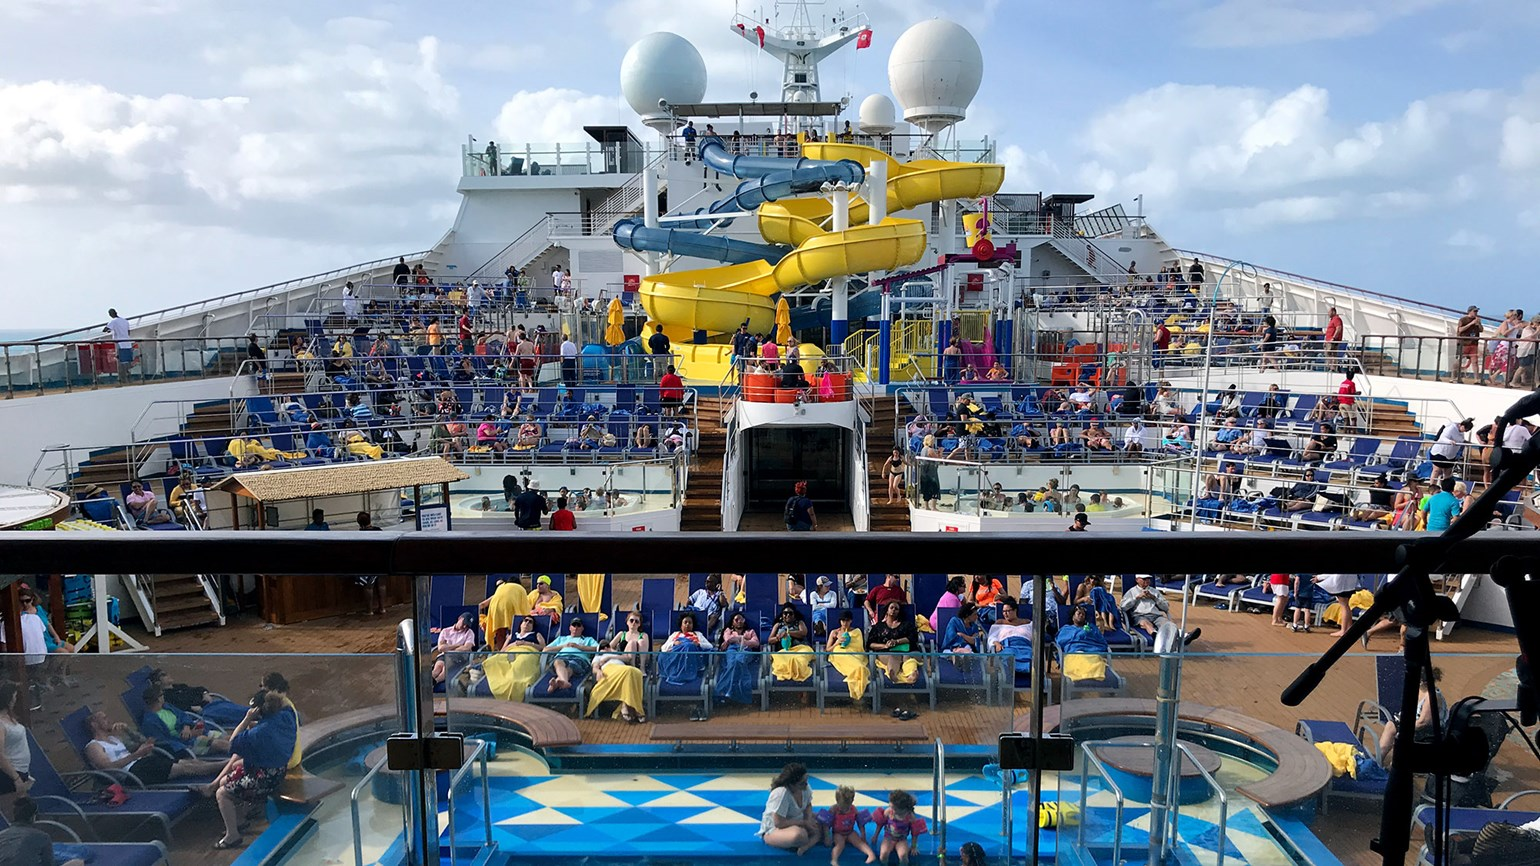 Direct Sales Canada >> Carnival Sunrise, more than a refurb: Travel Weekly